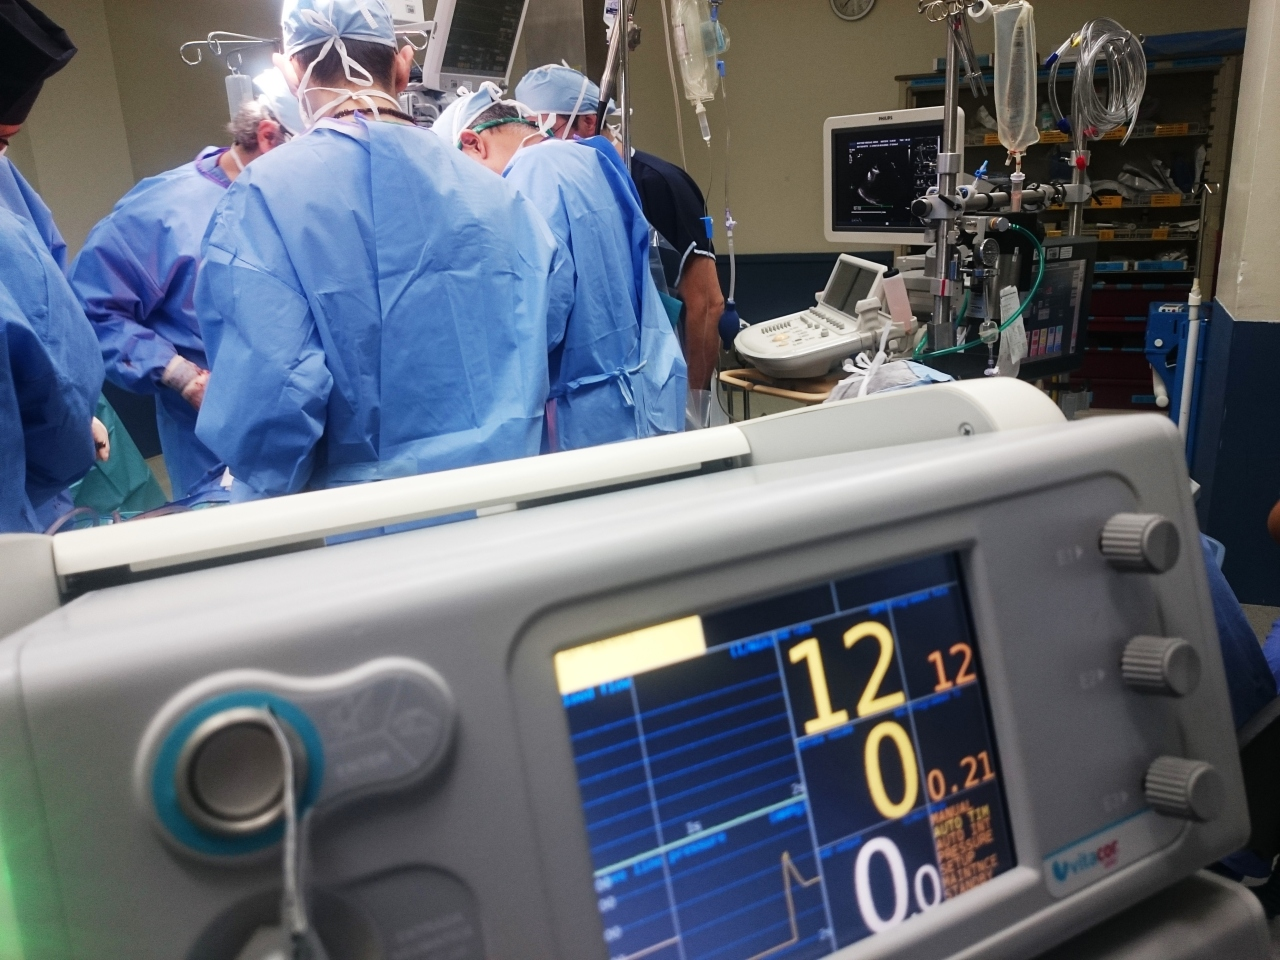 Mesothelioma Surgery No Longer Recommended in the UK